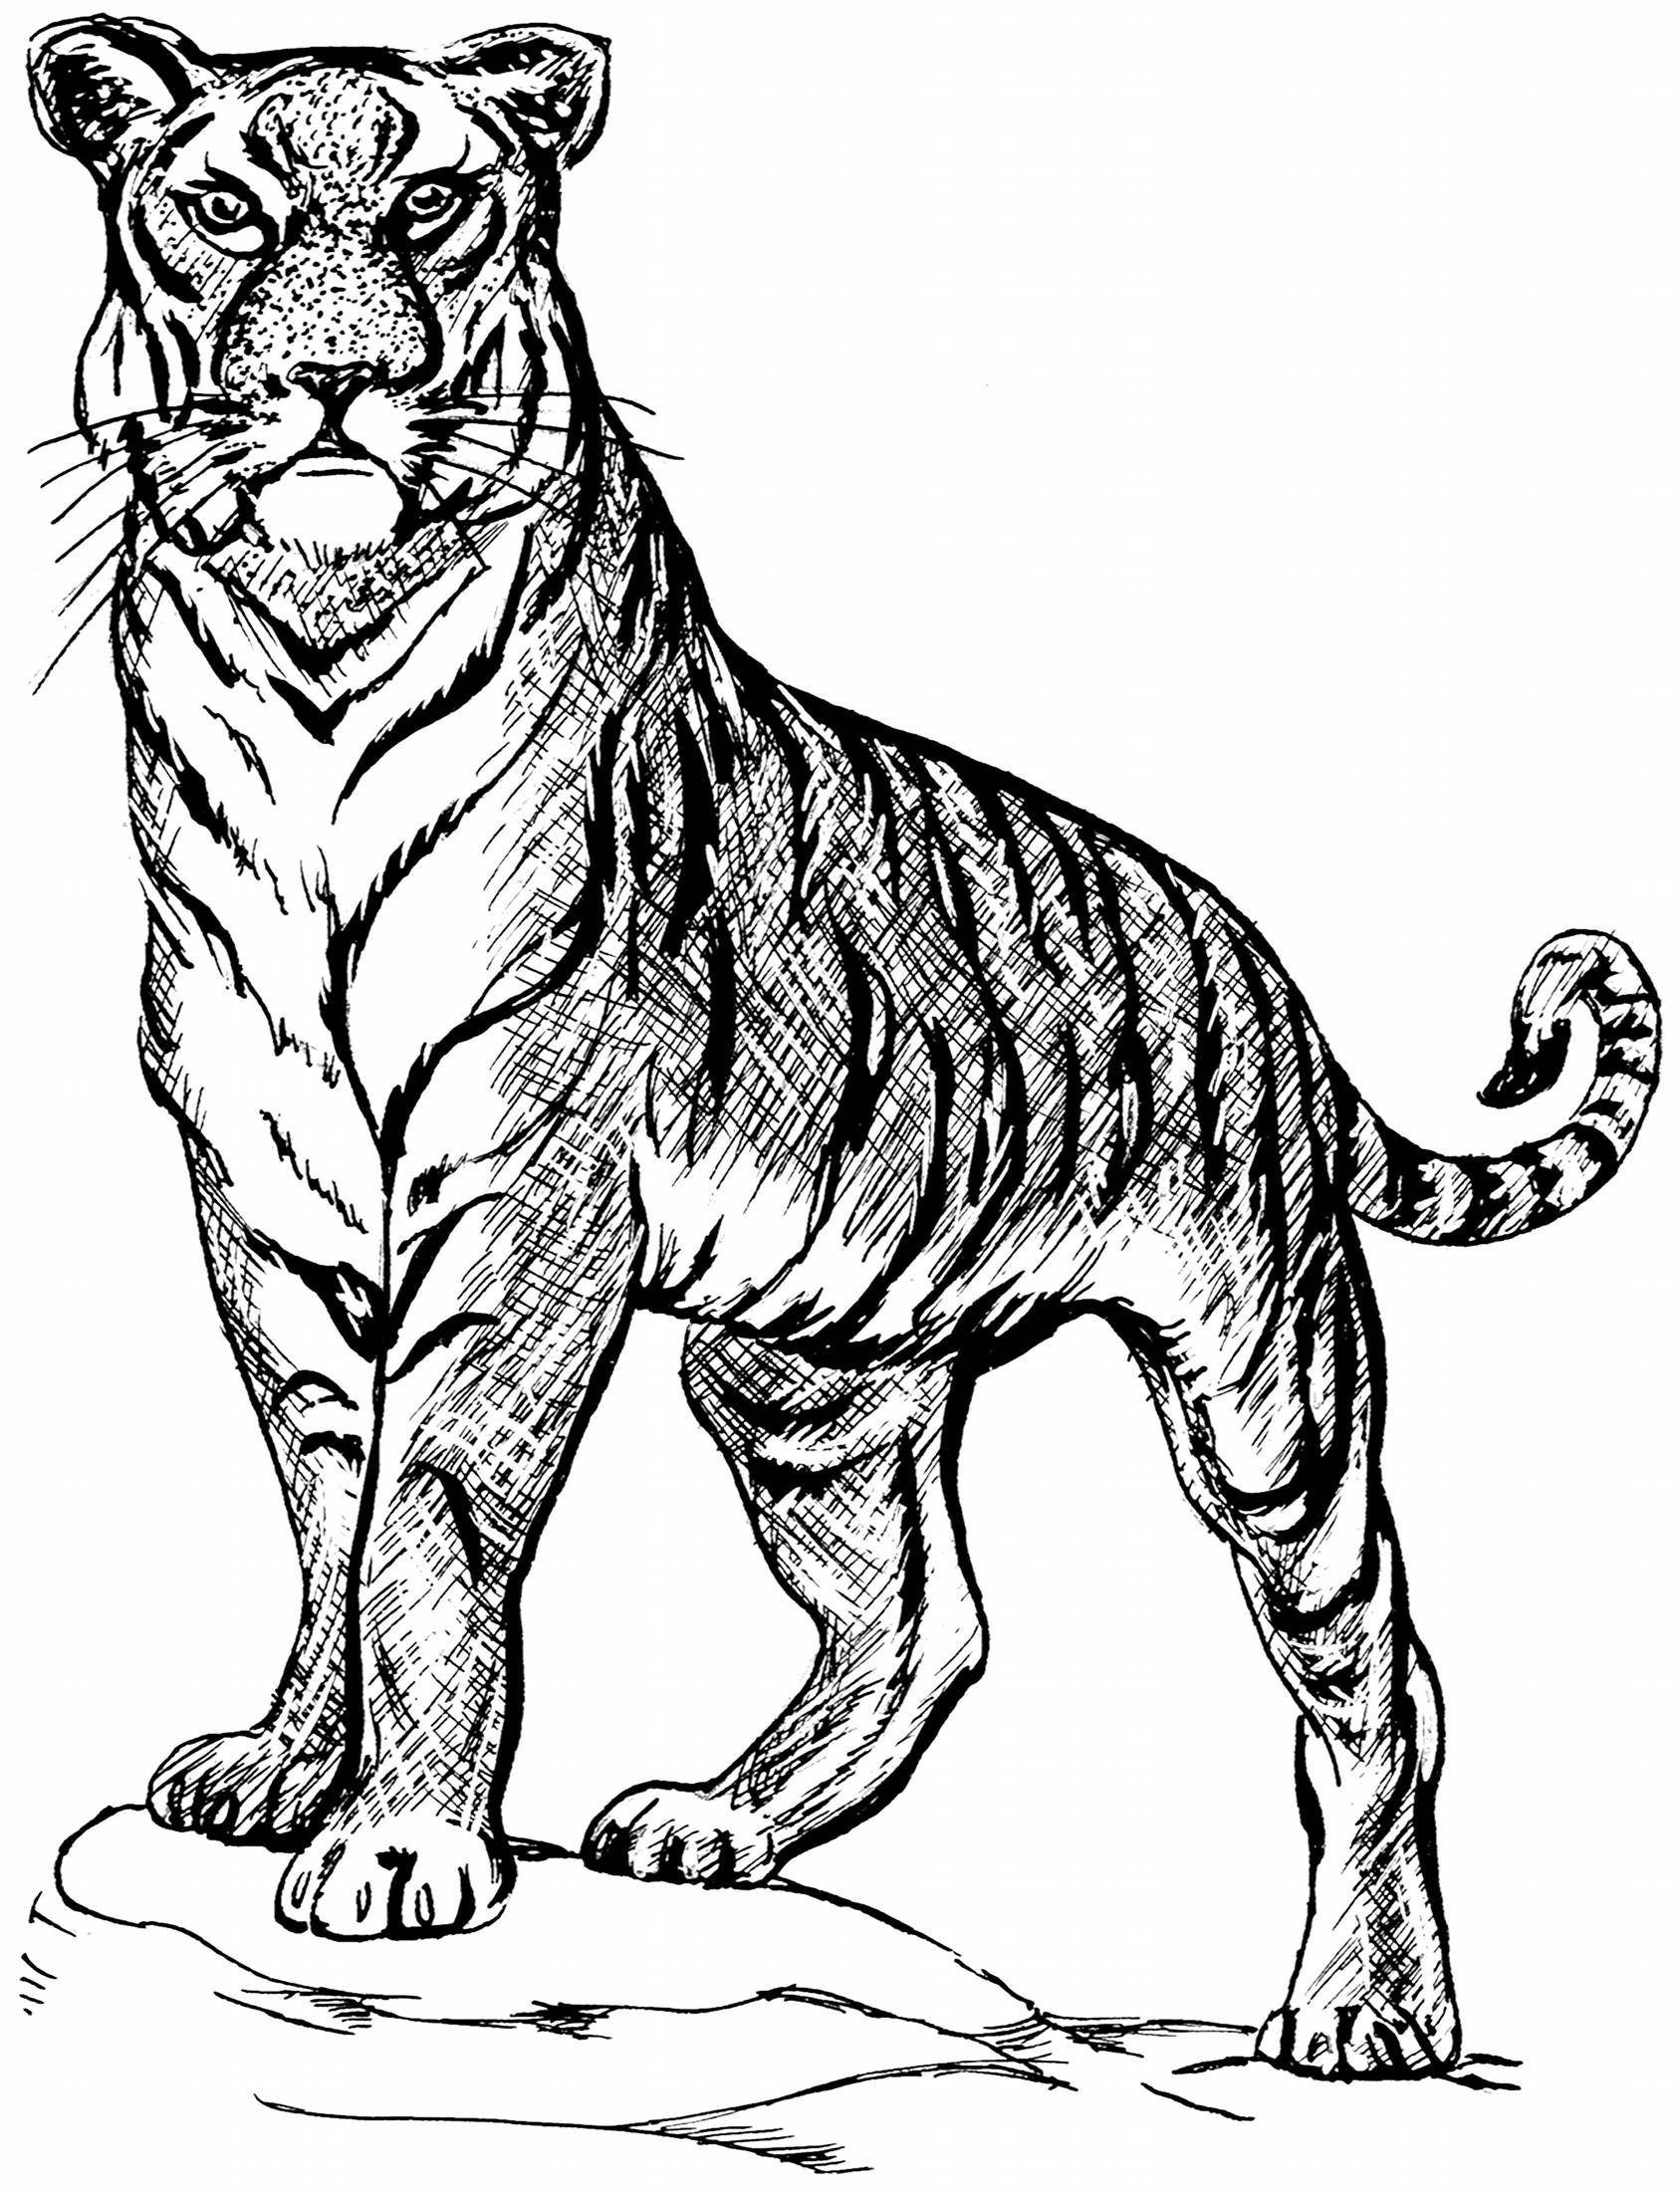 Tiger Line Drawings For Coloring Tiger Drawing Tiger Illustration Animal Drawings